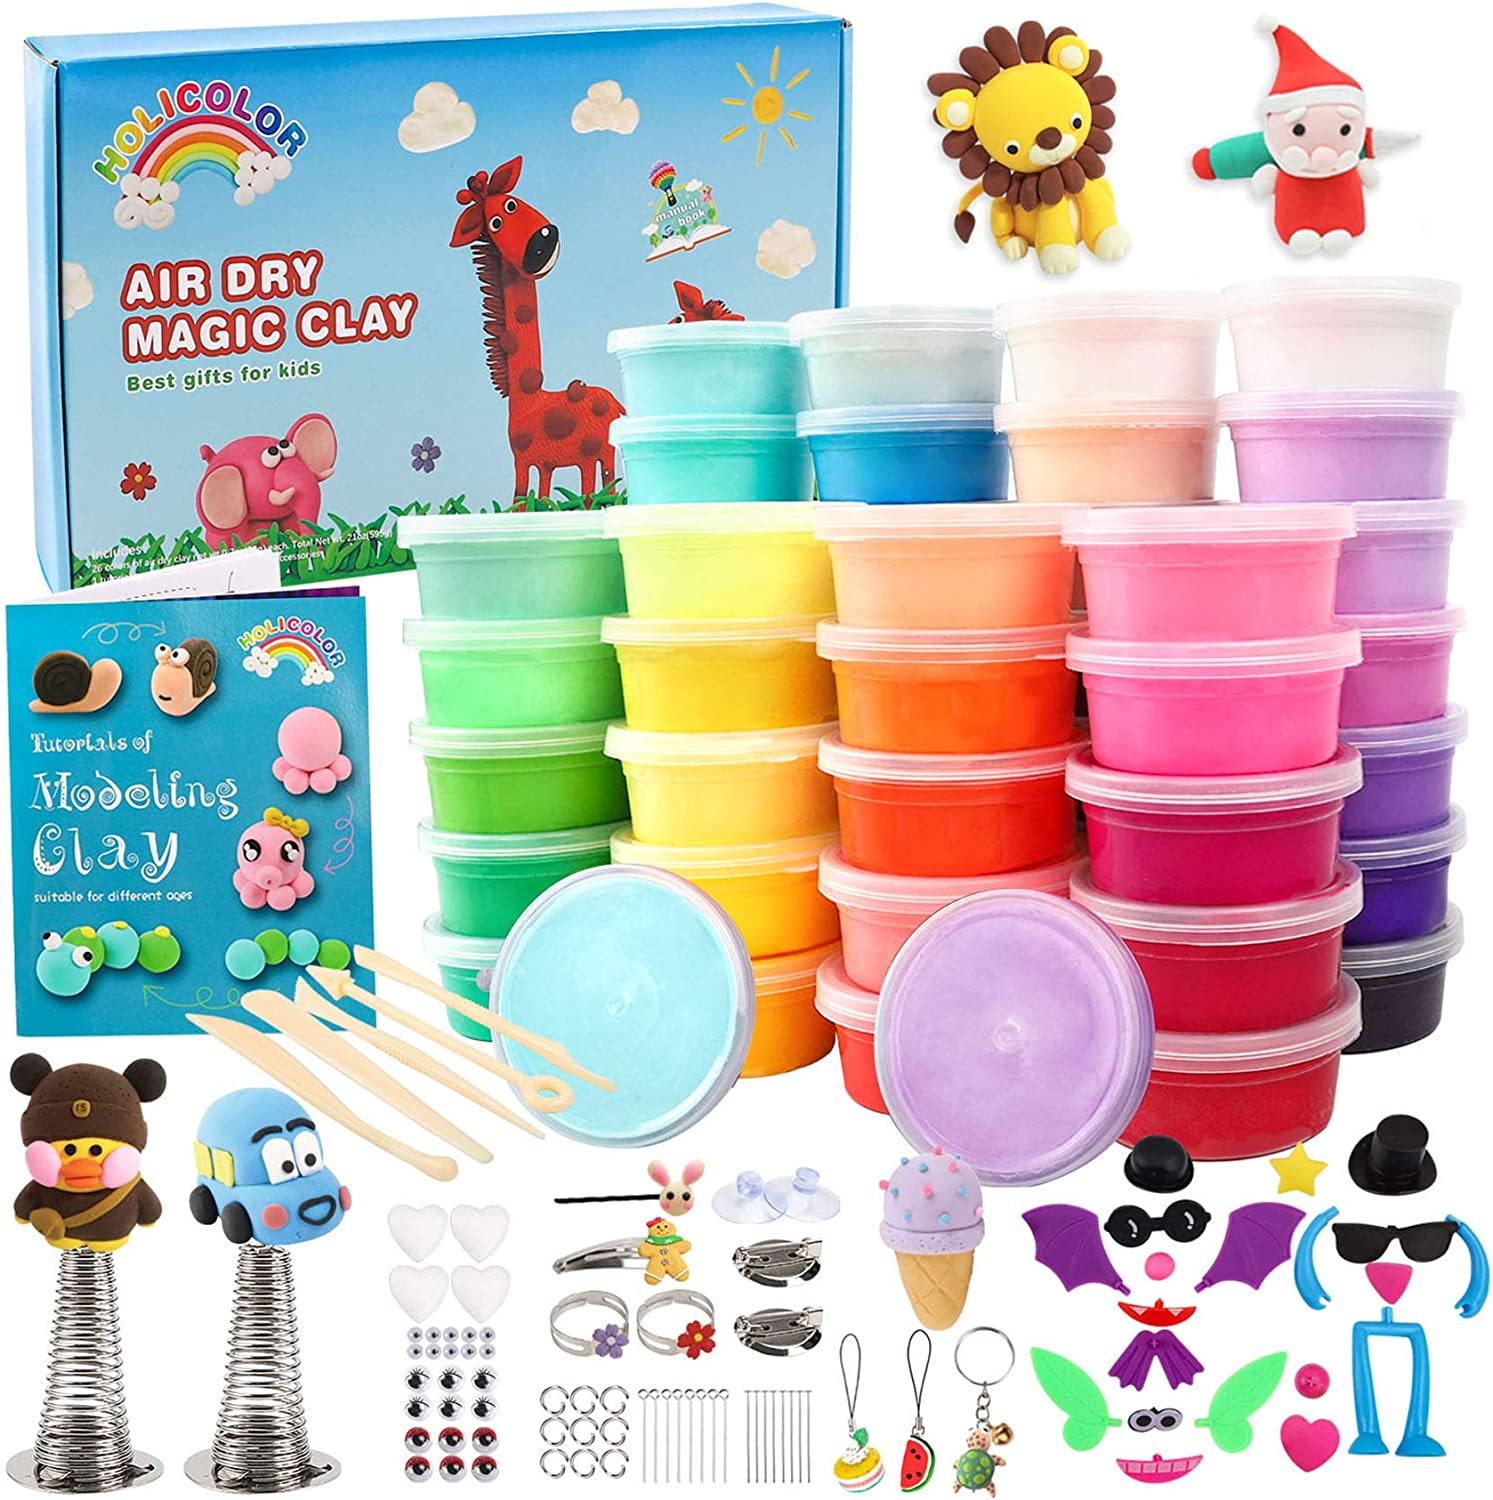 HOLICOLOR 50 Colors Air Dry Clay Magic Clay for Kids Includes Extra 1 White and 1 Black Kids Arts and Crafts Kit with Accessories and Tools, Best Gift for Girls and Boys 3-12 Year Old